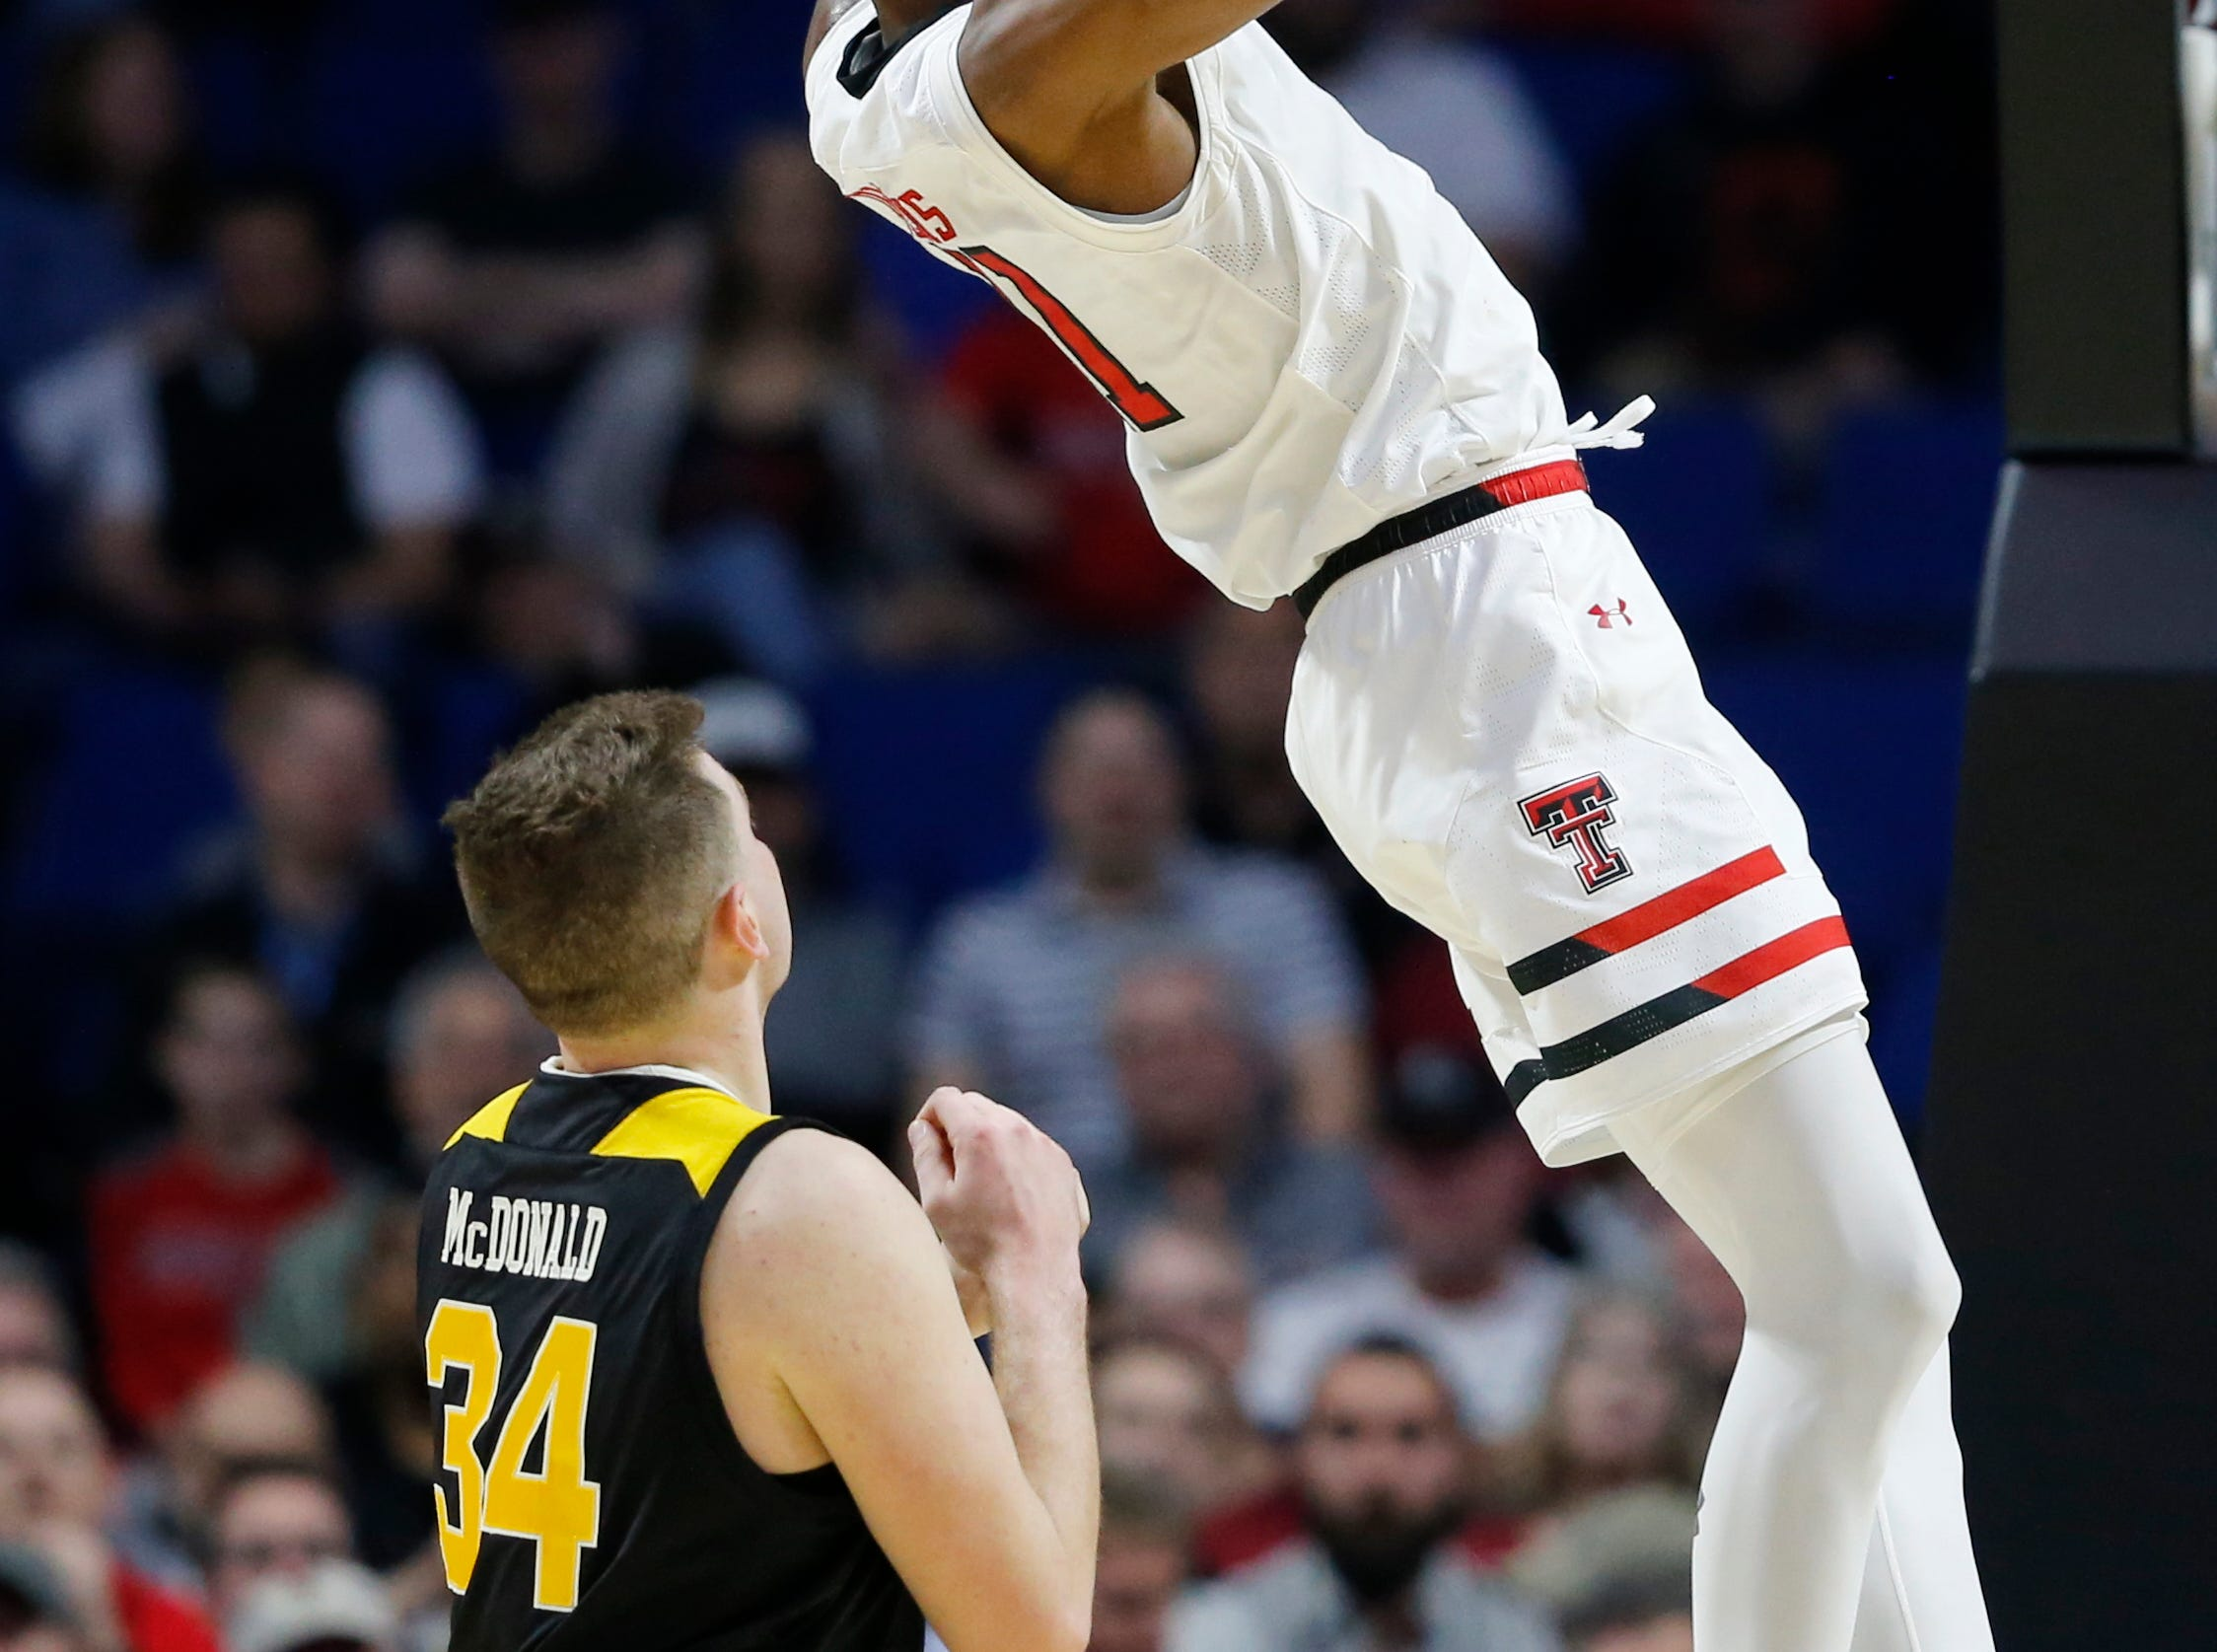 Texas Tech Red Raiders forward Tariq Owens (11) throws down a dunk in the first half of the NCAA Tournament First Round game between the 14-seeded Northern Kentucky Norse and the 3-seeded Texas Tech Red Raiders the BOK Center in downtown Tulsa on Friday, March 22, 2019. Texas Tech led 30-26 at halftime.